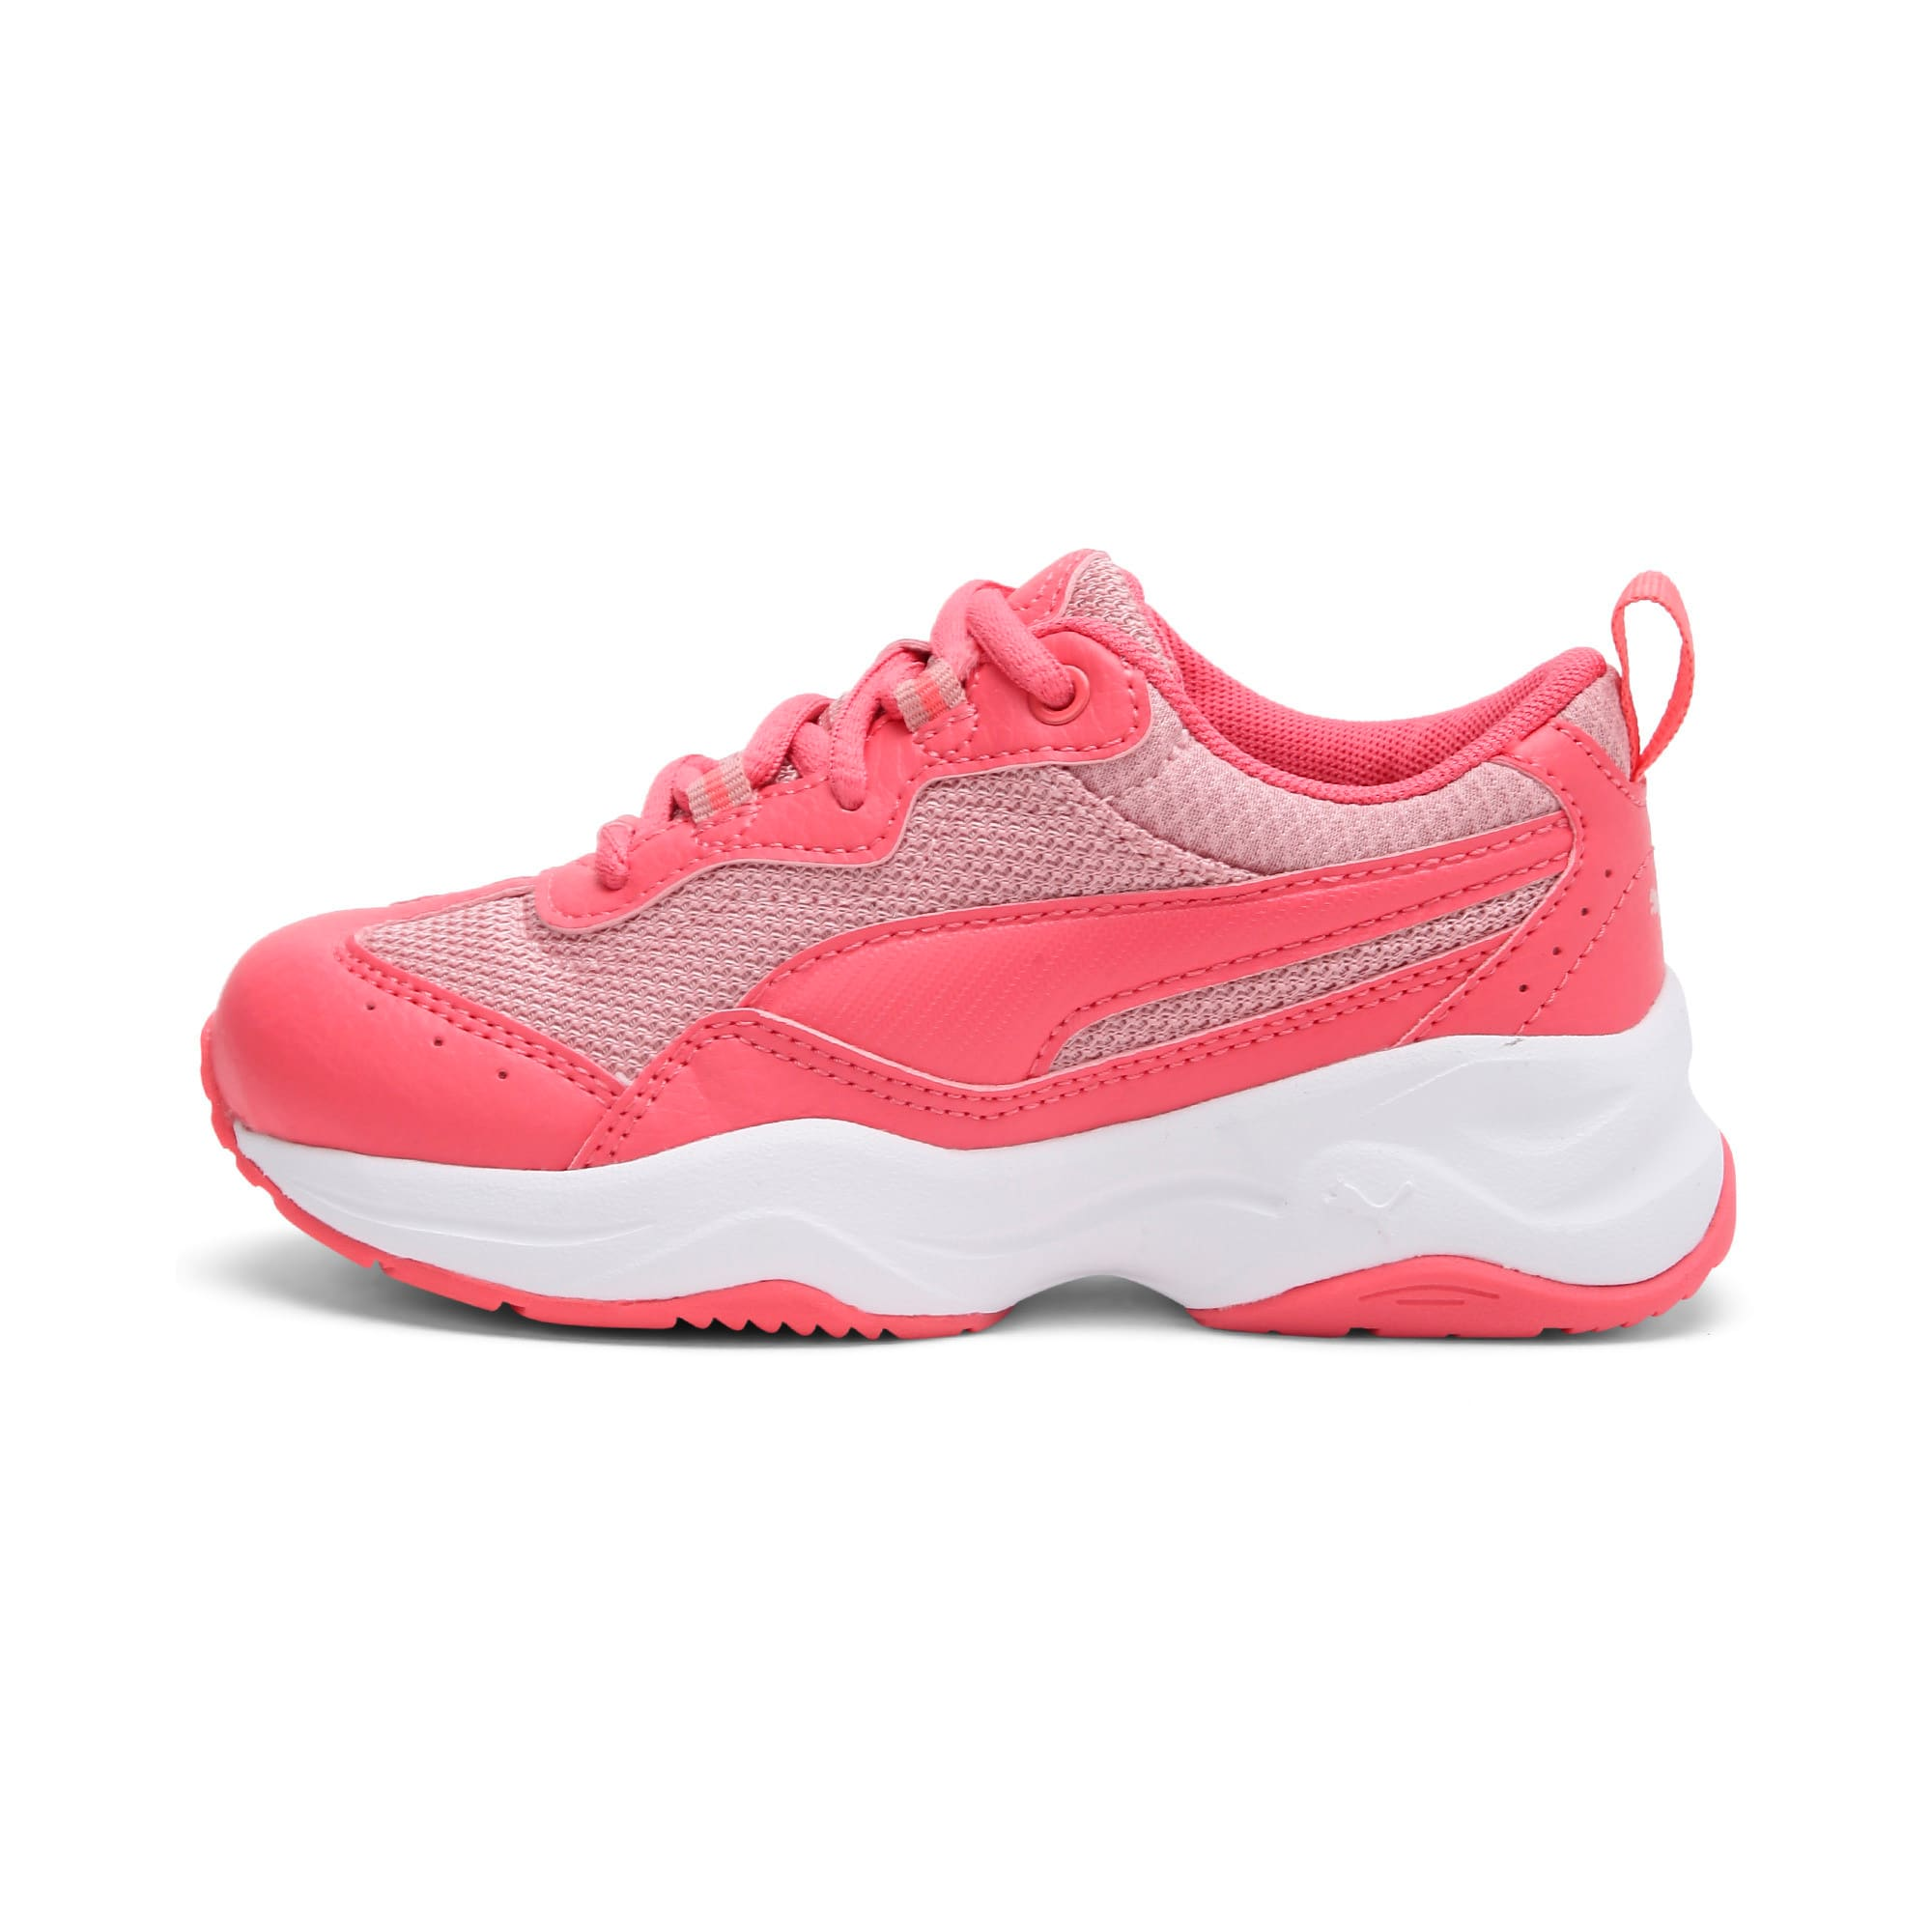 Thumbnail 1 of Cilia Kids' Trainers, Calypso Coral-B Rose-White, medium-IND